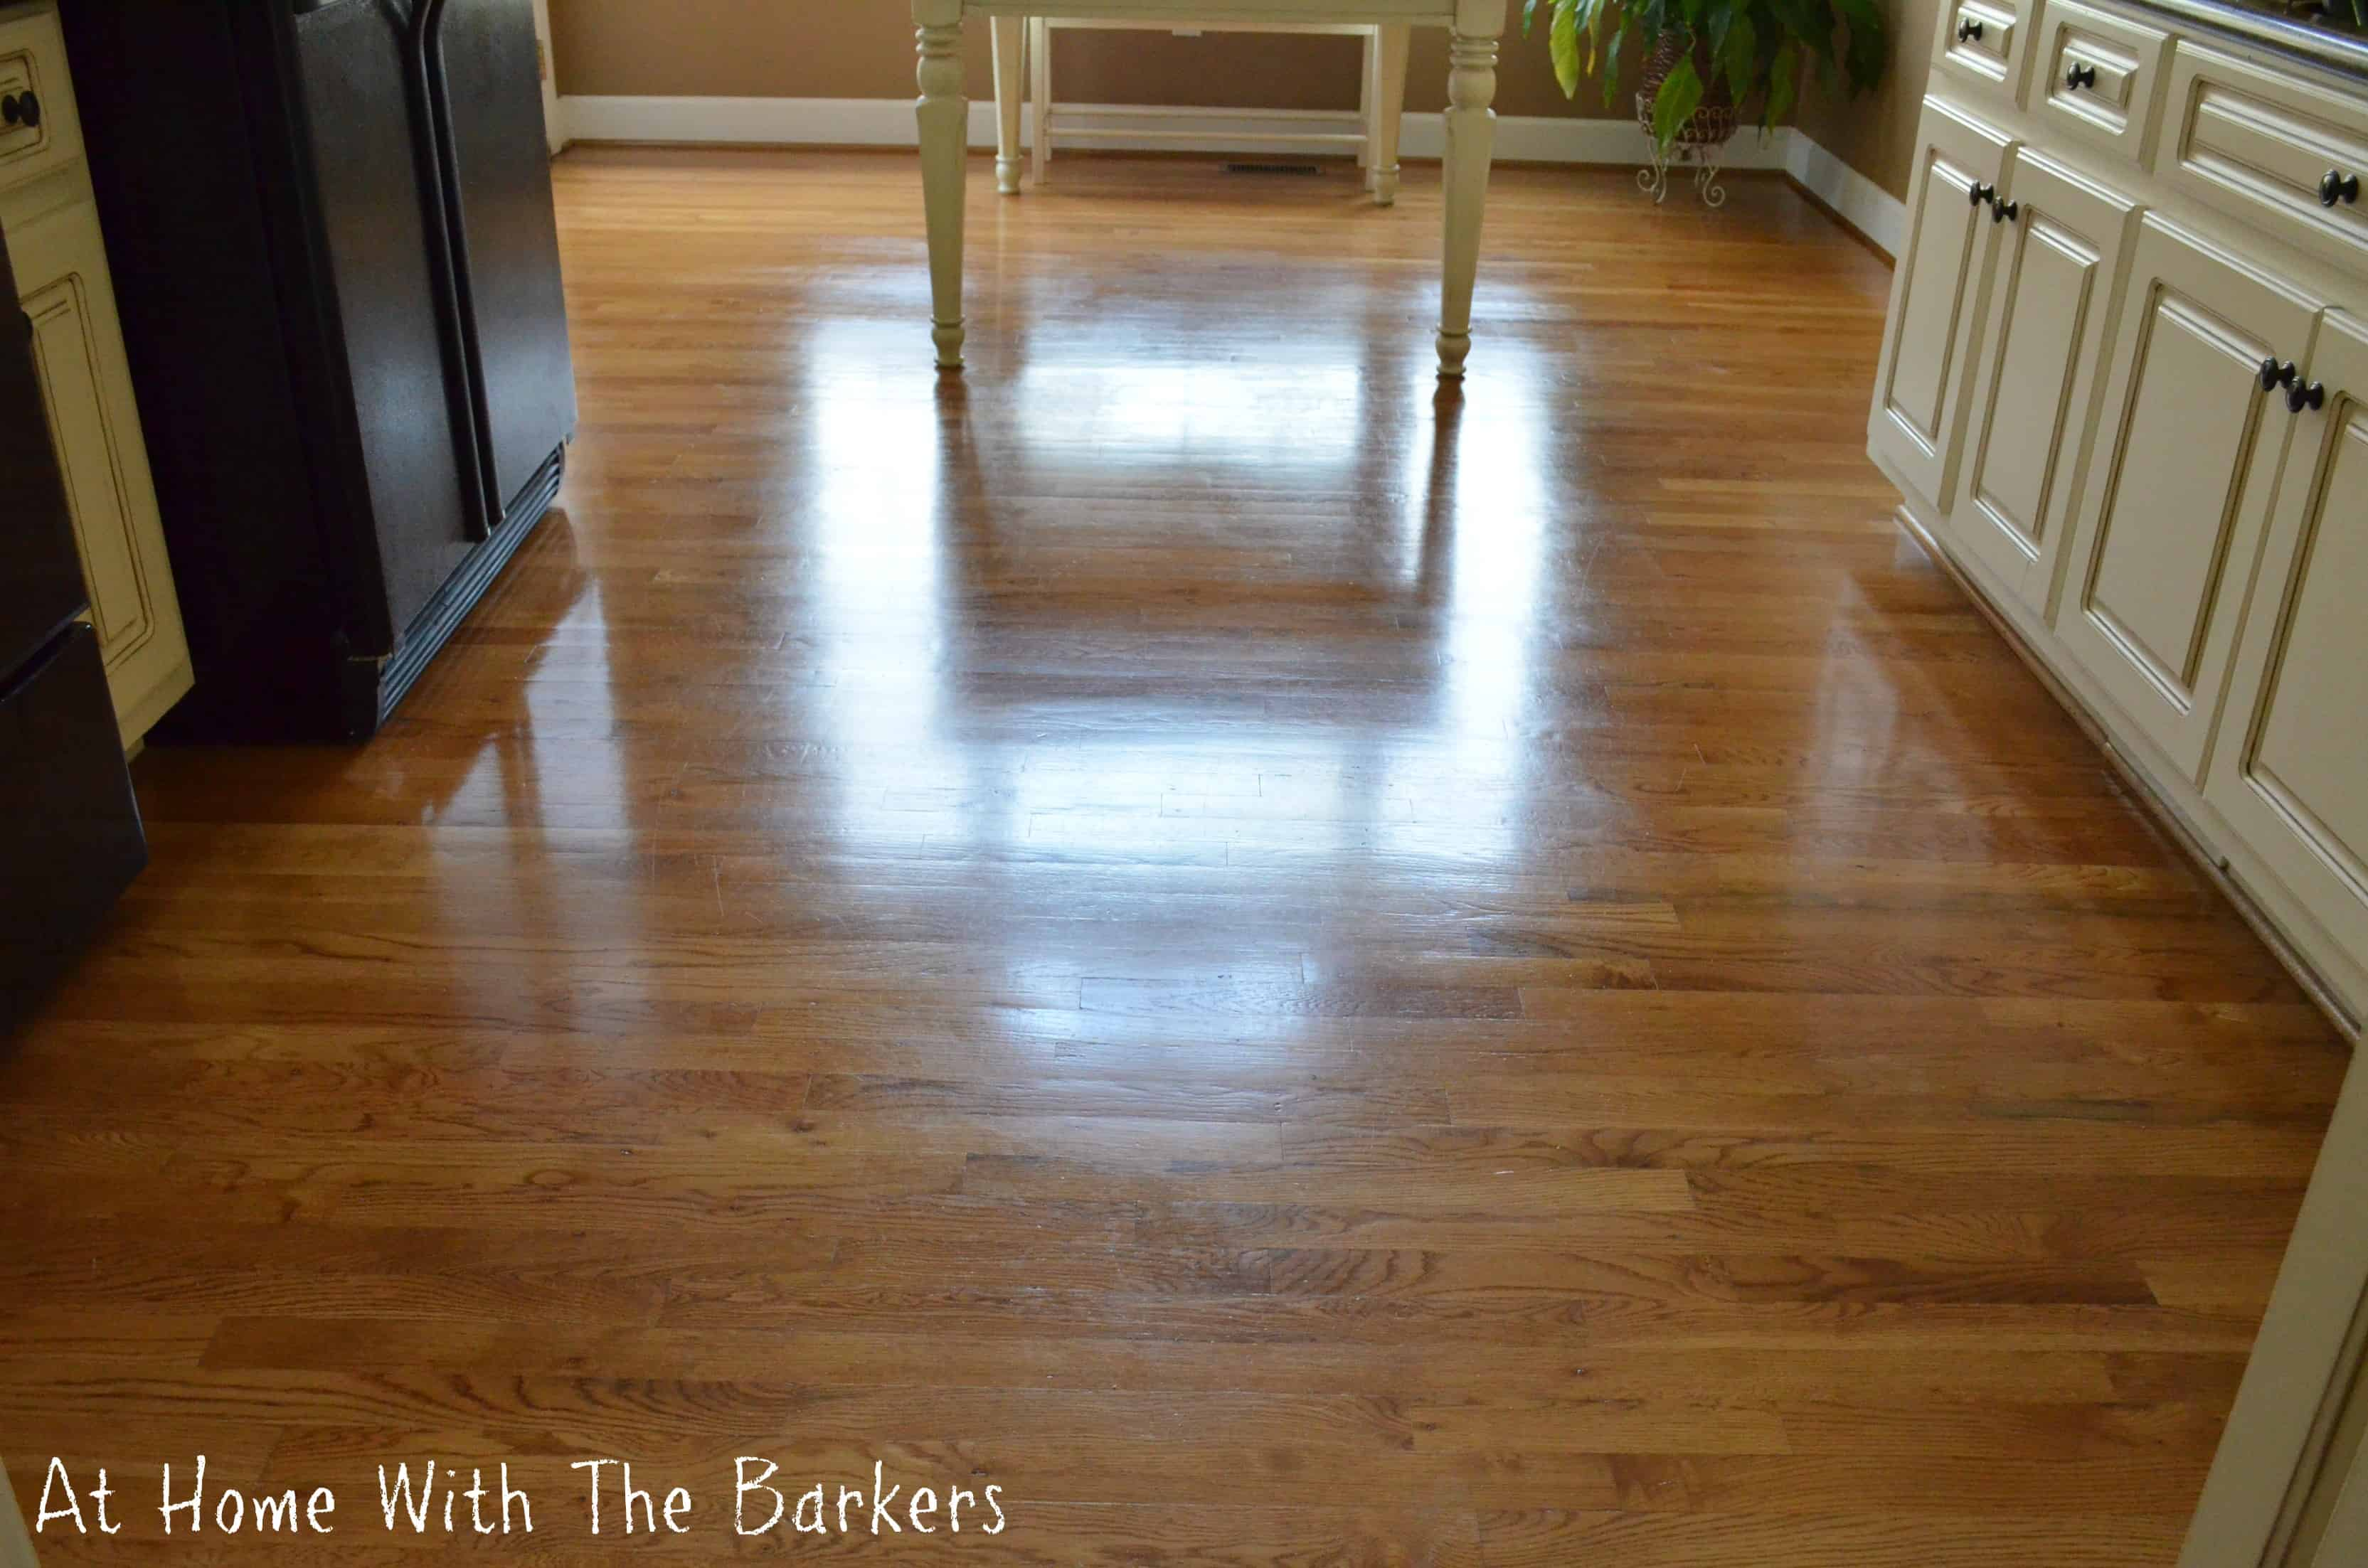 How To Get Your Floors To Shine At Home With The Barkers